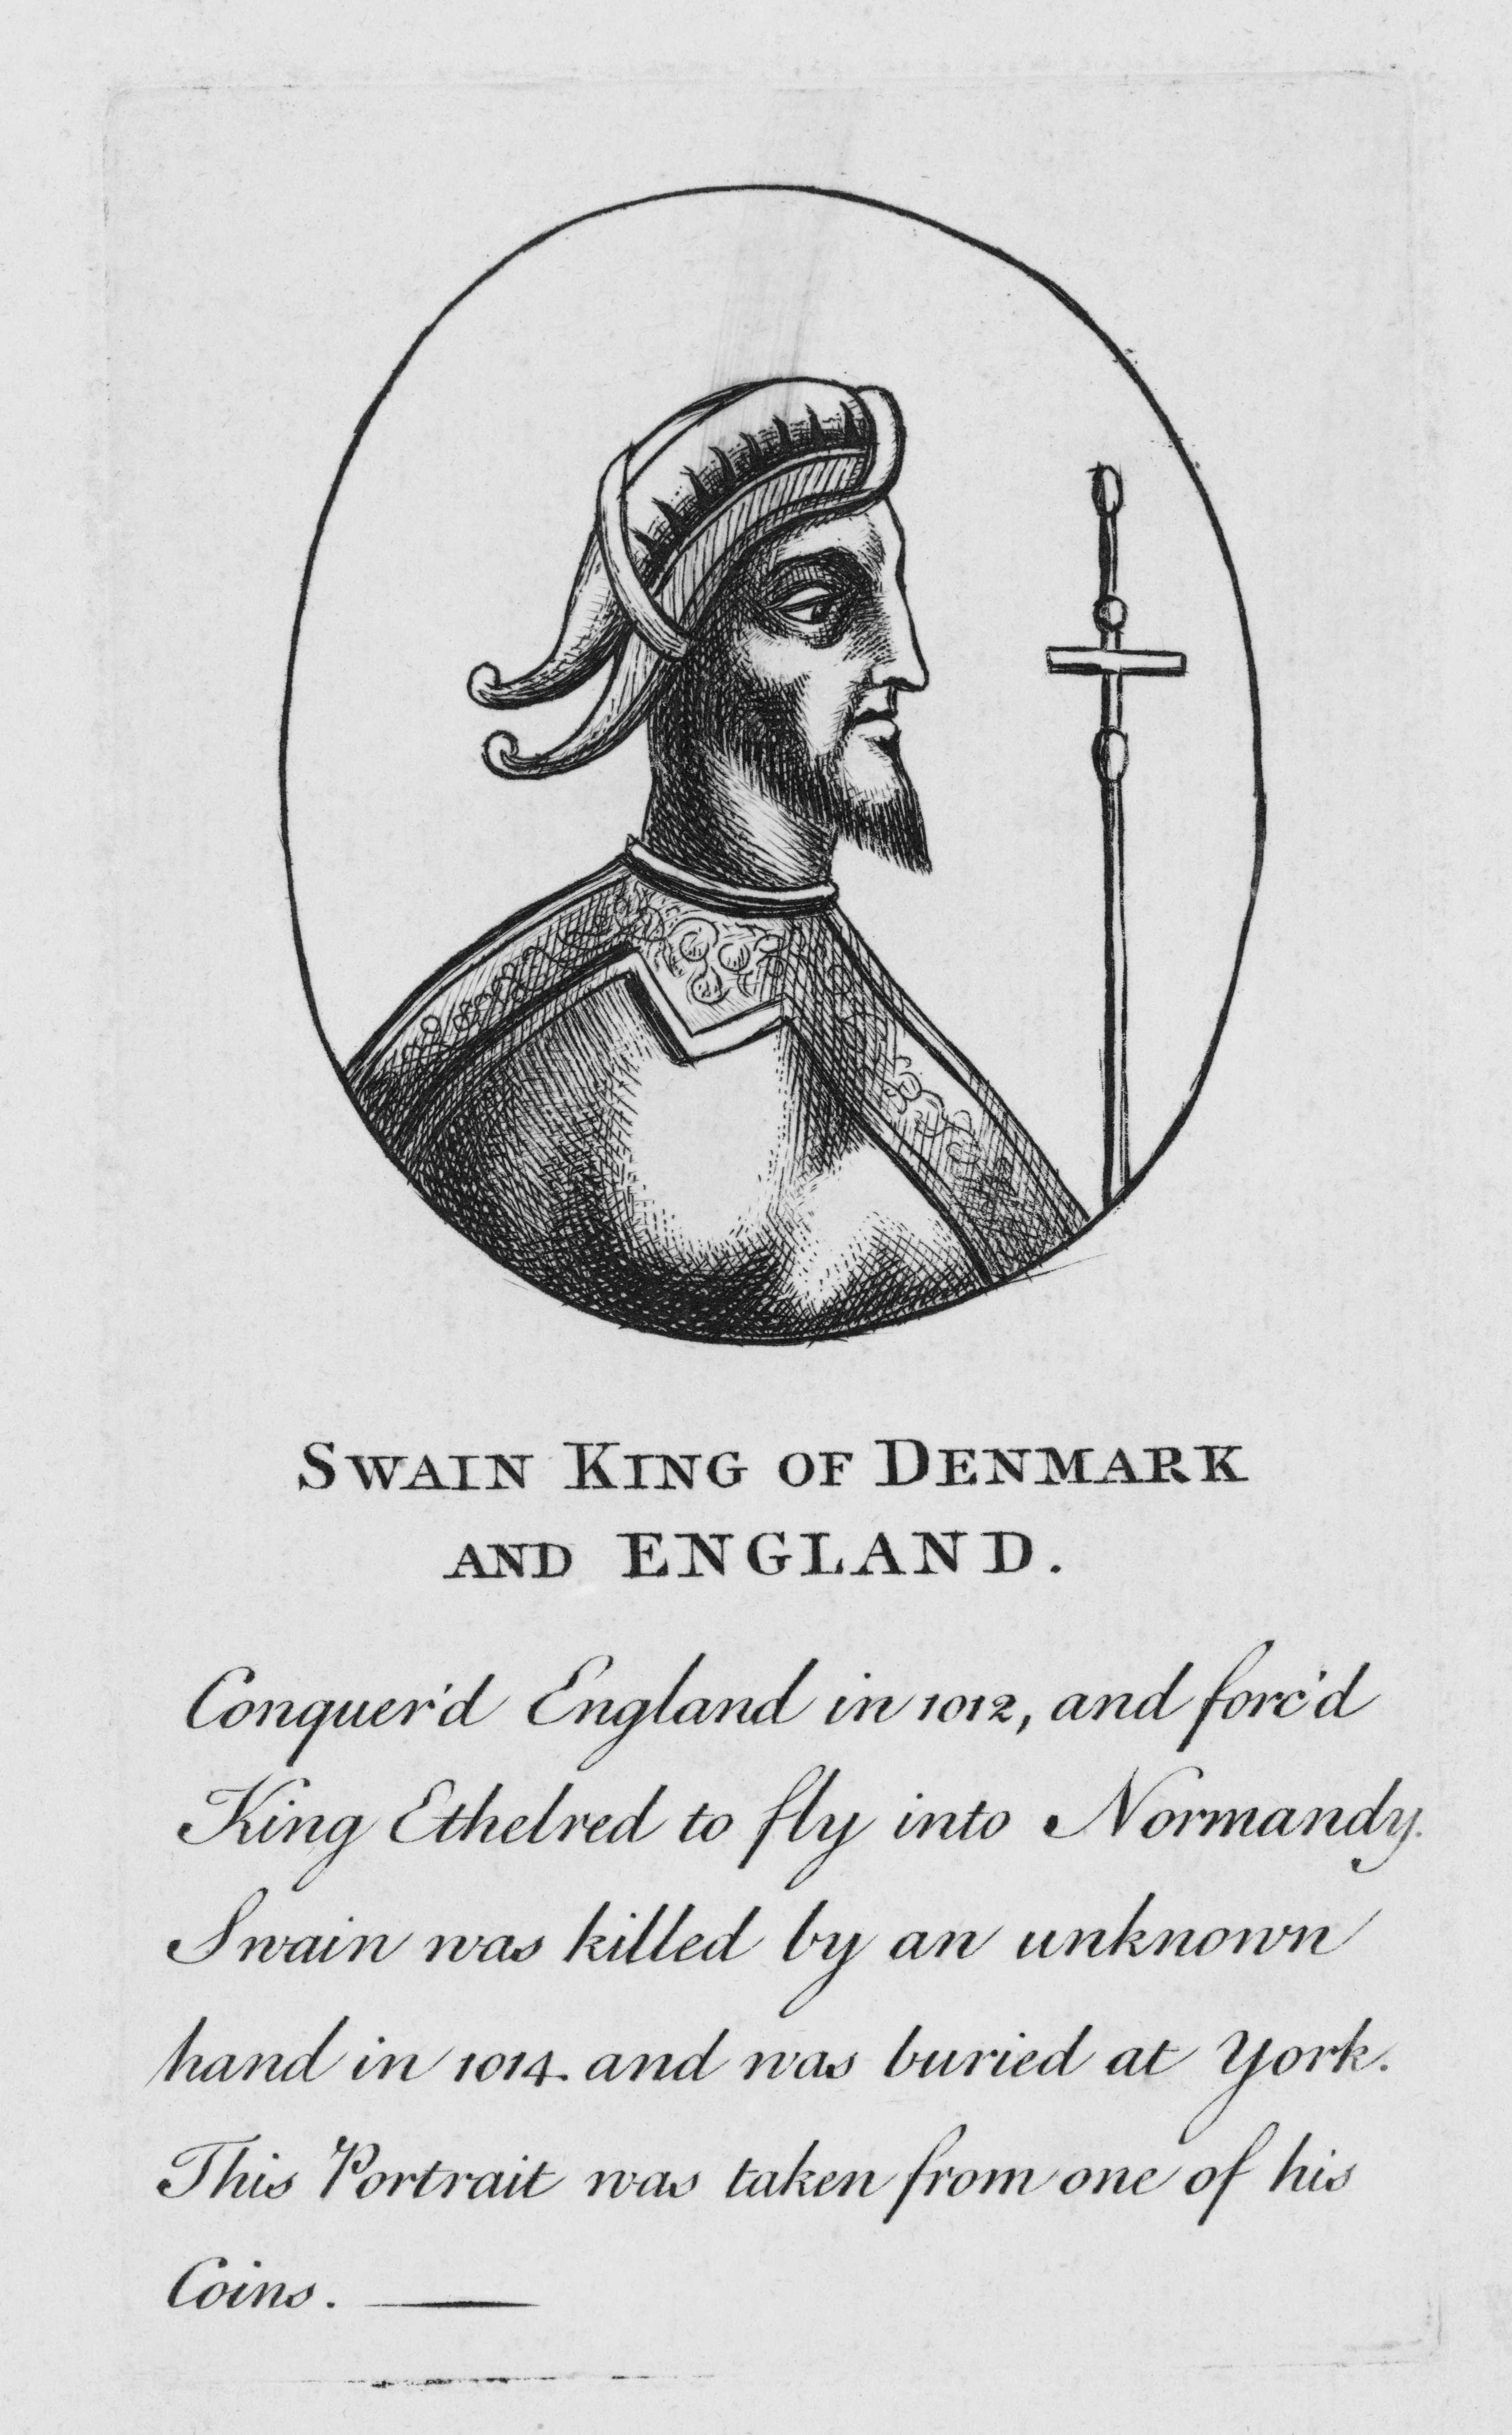 A portrait of Swein, king of Denmark and England, taken from one of his coins. (Getty Images)